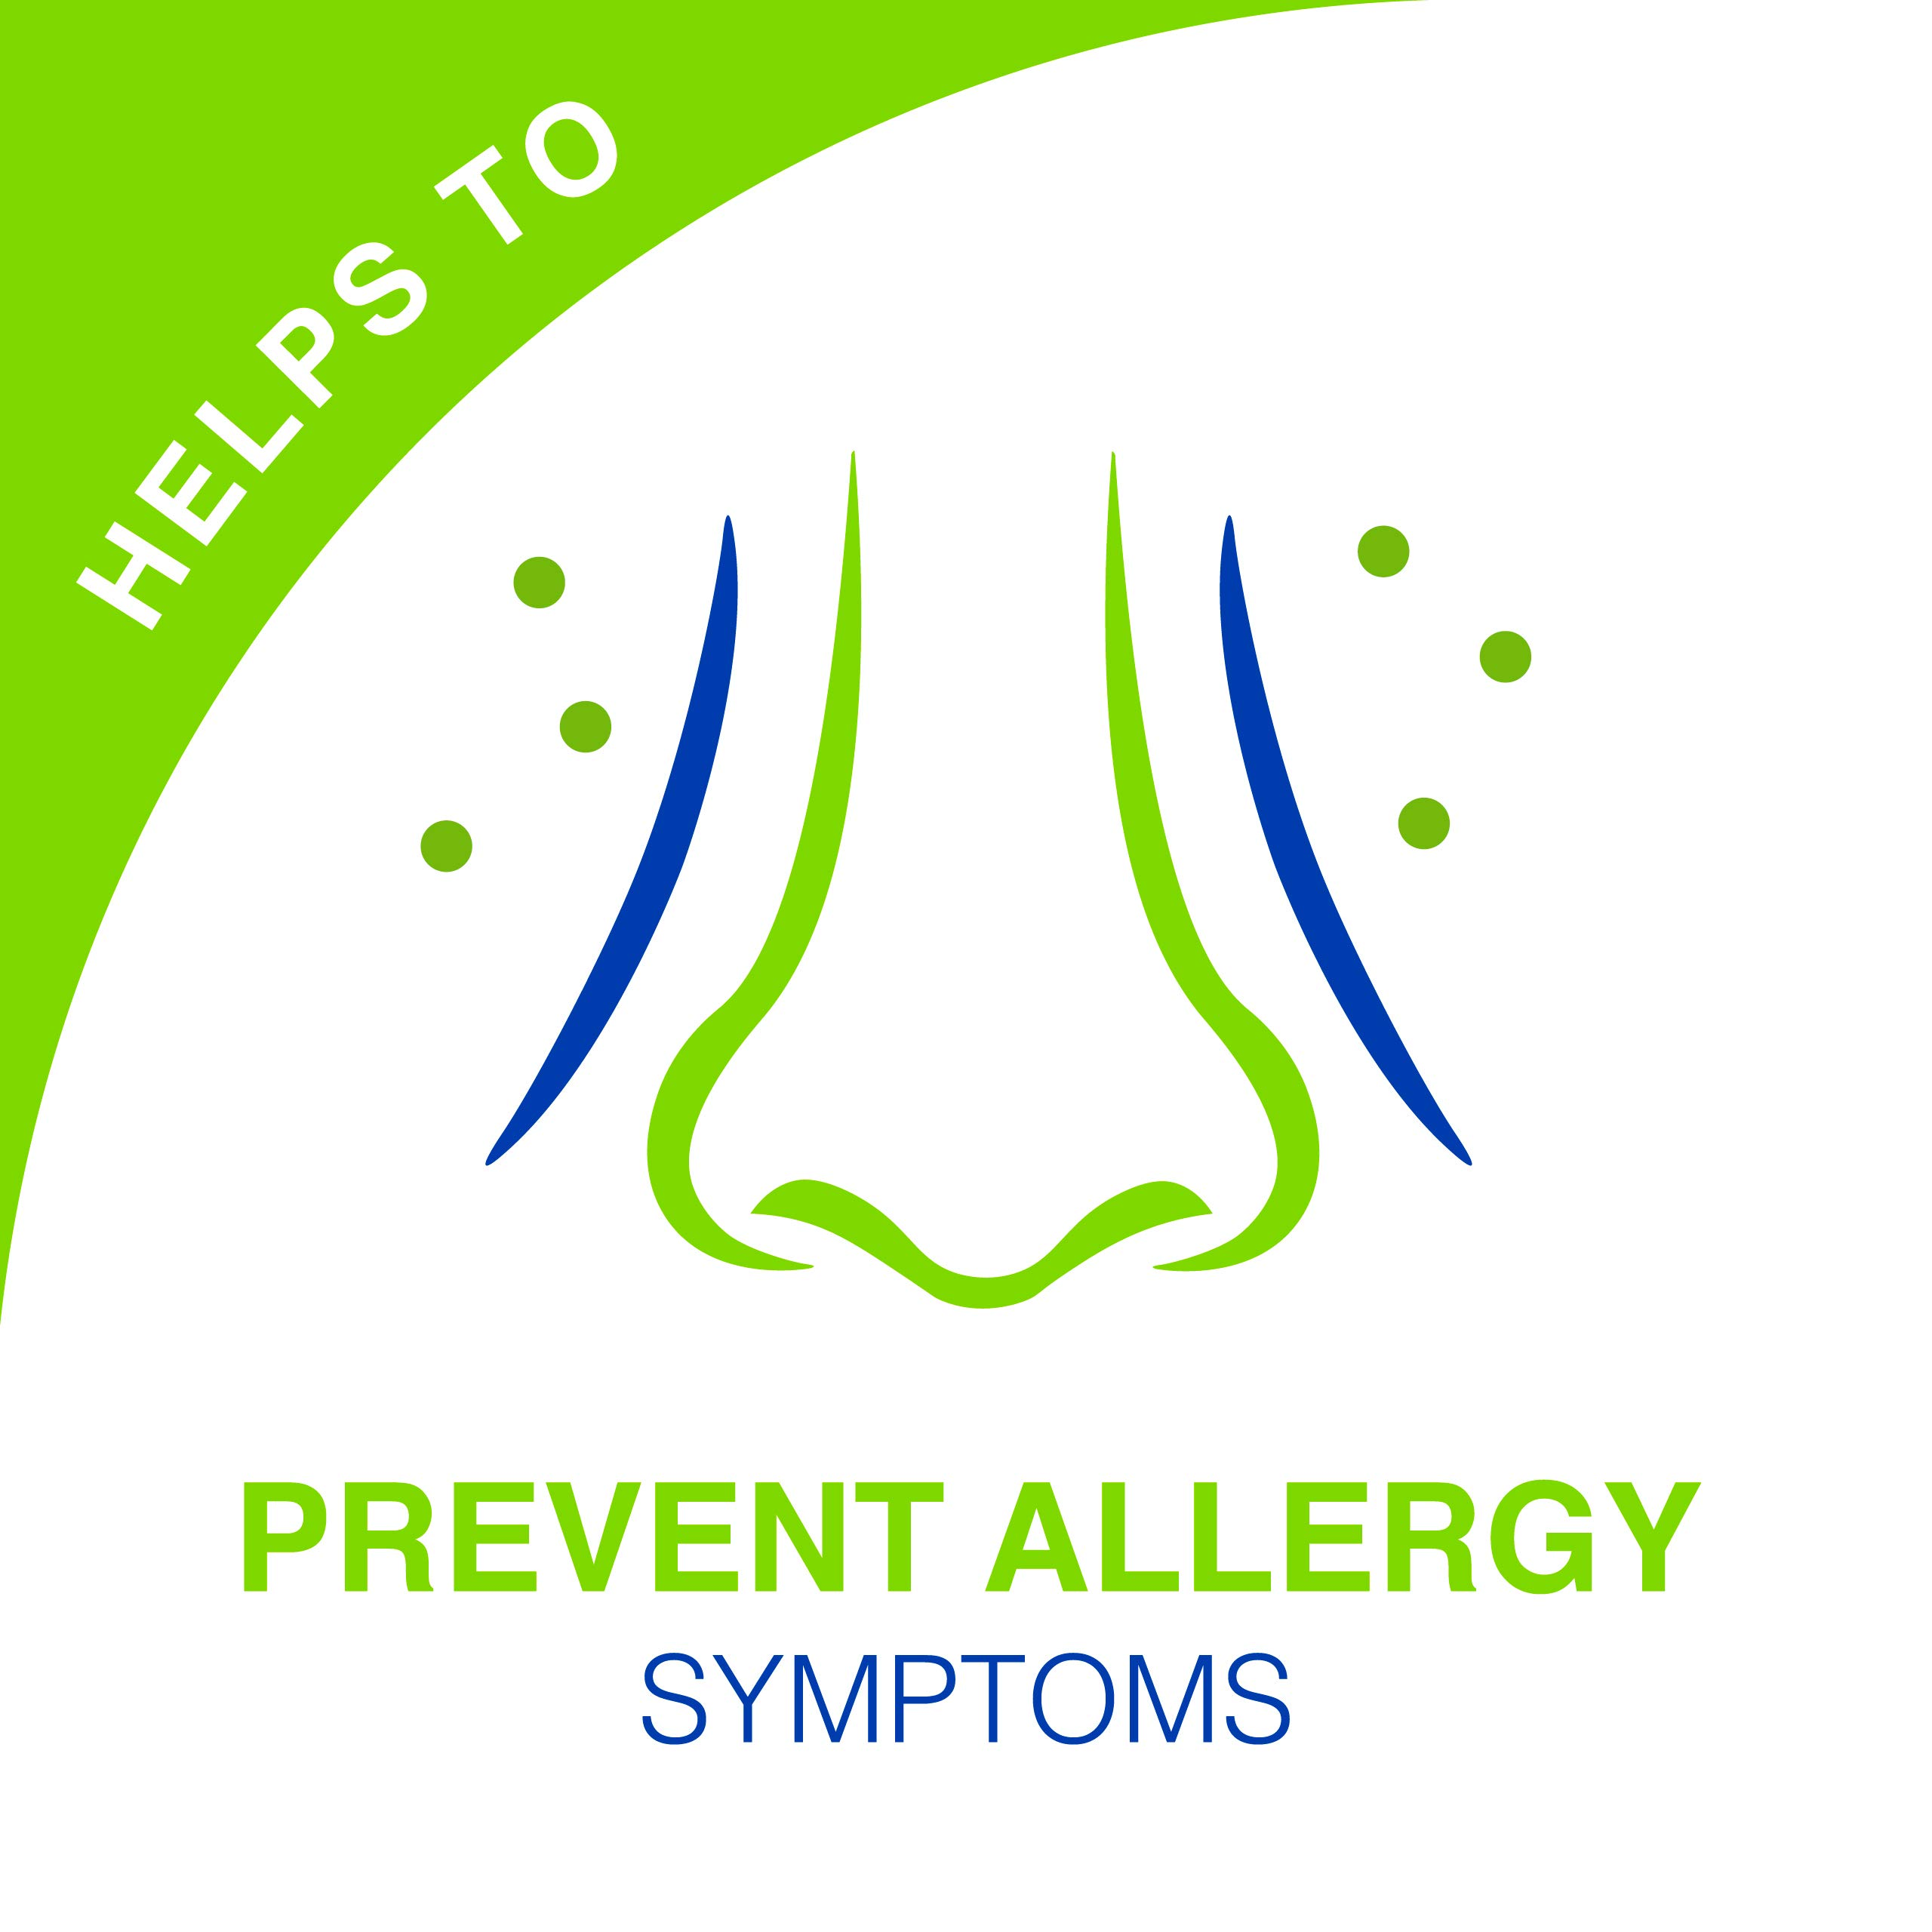 Sterimar Stop & Protect Allergy Response- 100% Natural Sea Water Based Nasal Spray with Added Magnese and Calcium- 20 ml Can